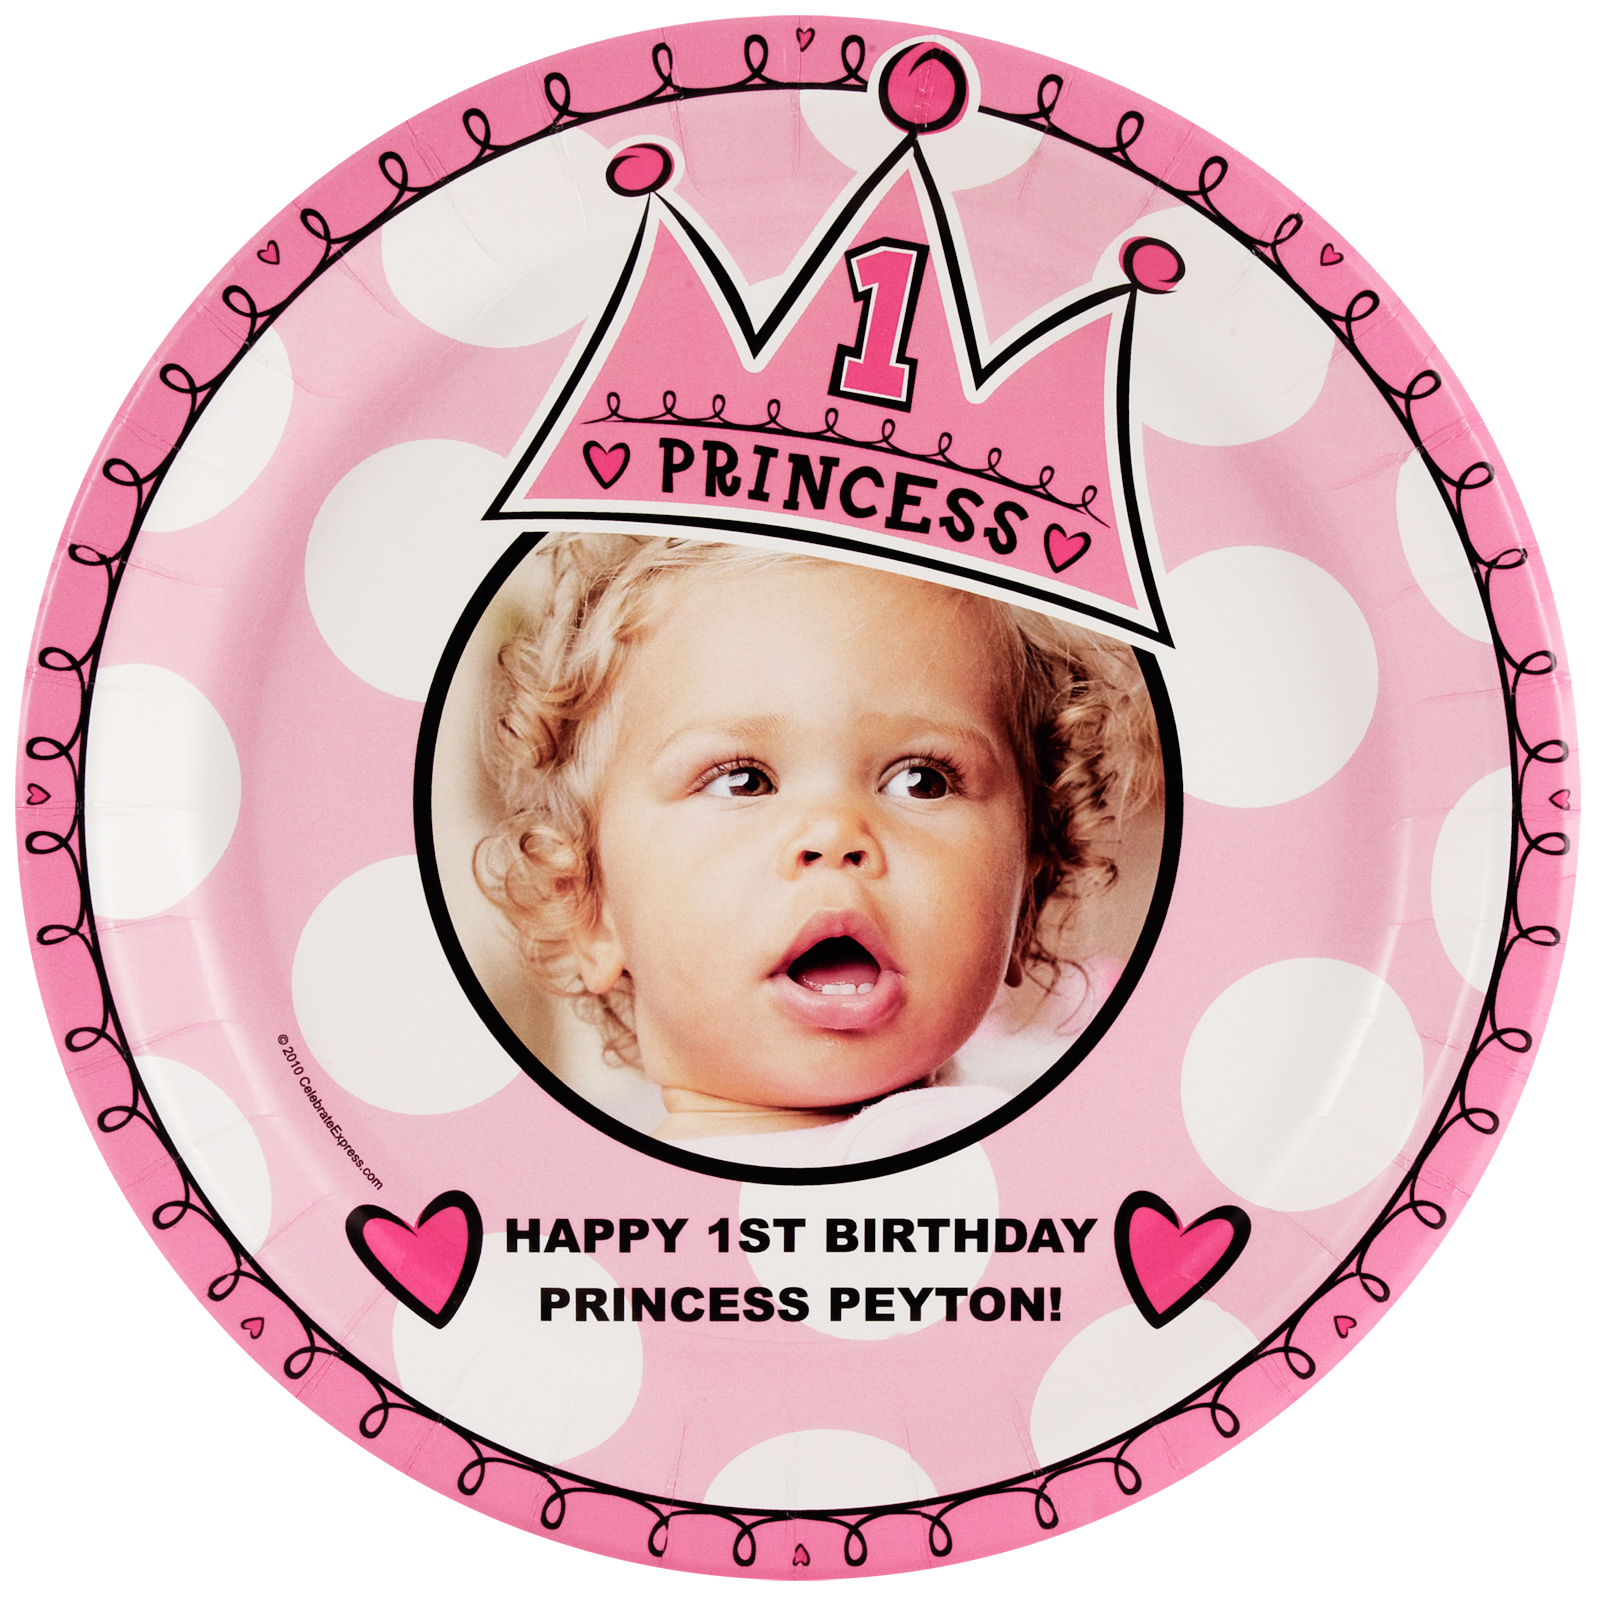 Birthday Princess 1st Personalized - Dinner Plate  sc 1 st  Birthday Express & Birthday Princess 1st Personalized - Dinner Plate ...